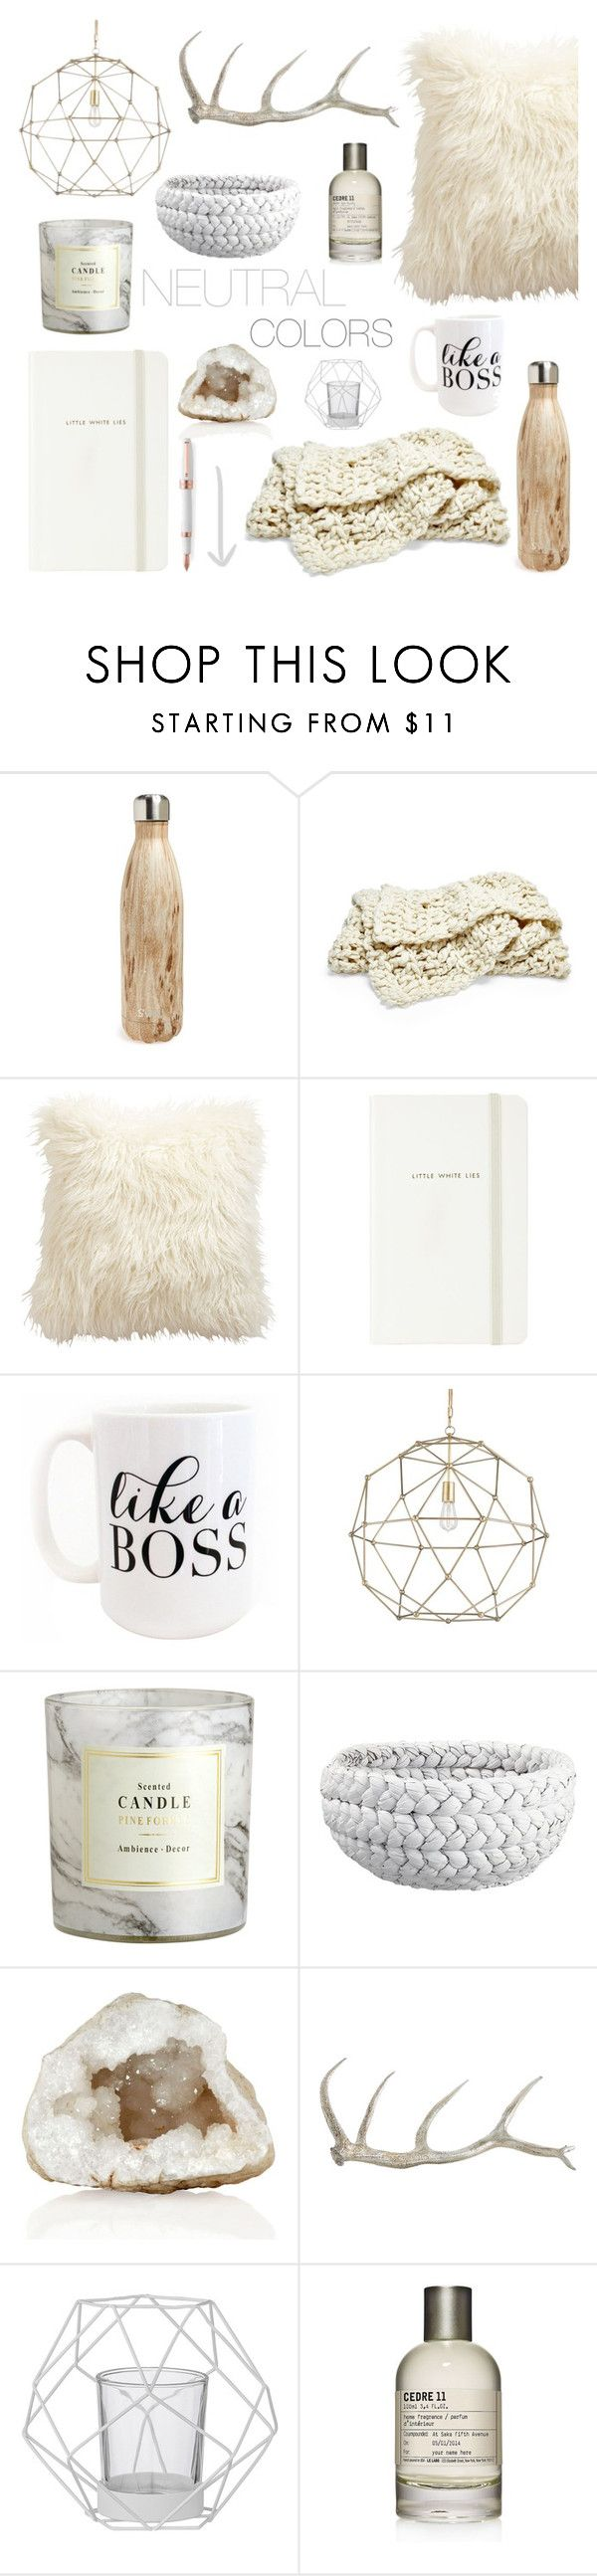 """""""Neutrals"""" by southernpearldesigns ❤ liked on Polyvore featuring interior, interiors, interior design, home, home decor, interior decorating, S'well, Ethan Allen, Kate Spade and Moon and Lola"""